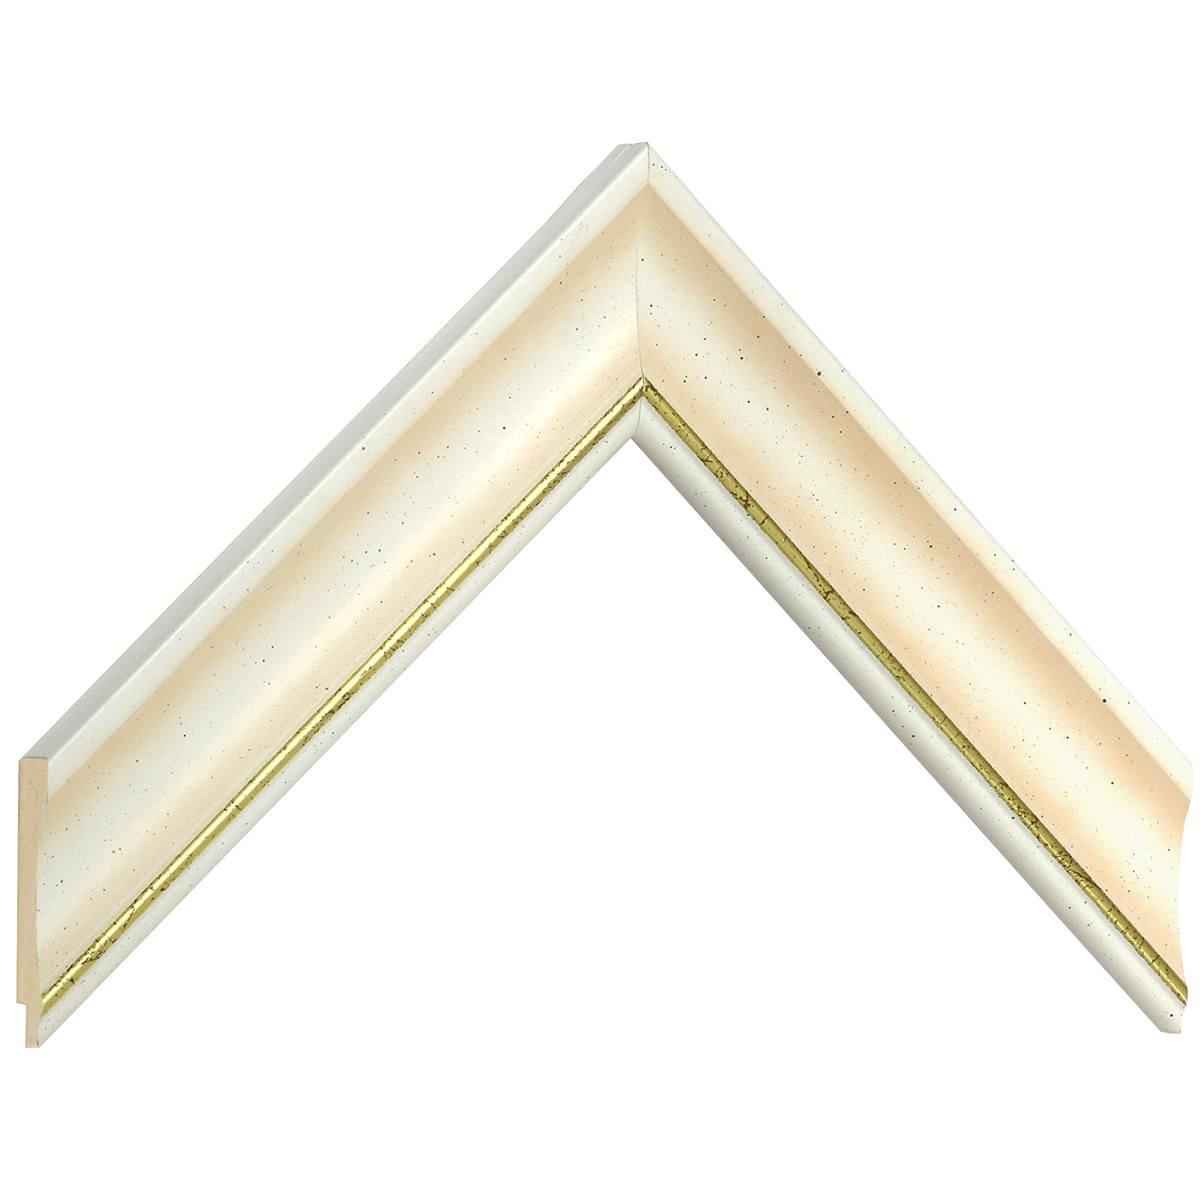 Liner ayous 35mm - convex shape, cream coloured, gold edge